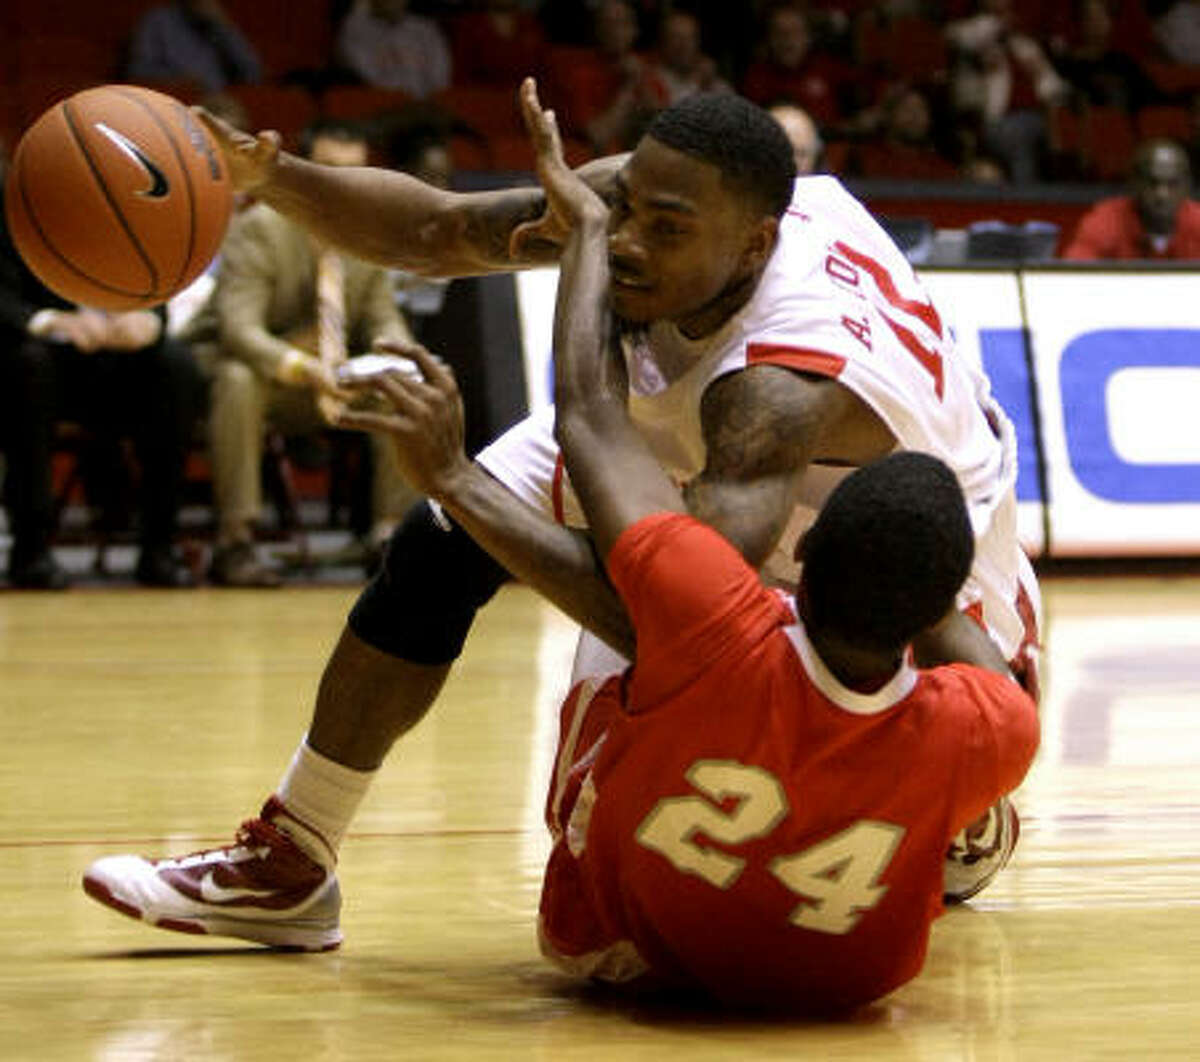 UH guard Aubrey Coleman, top, is tripped up by Nicholls State forward Kellan Carter on his way to the basket during the first half.